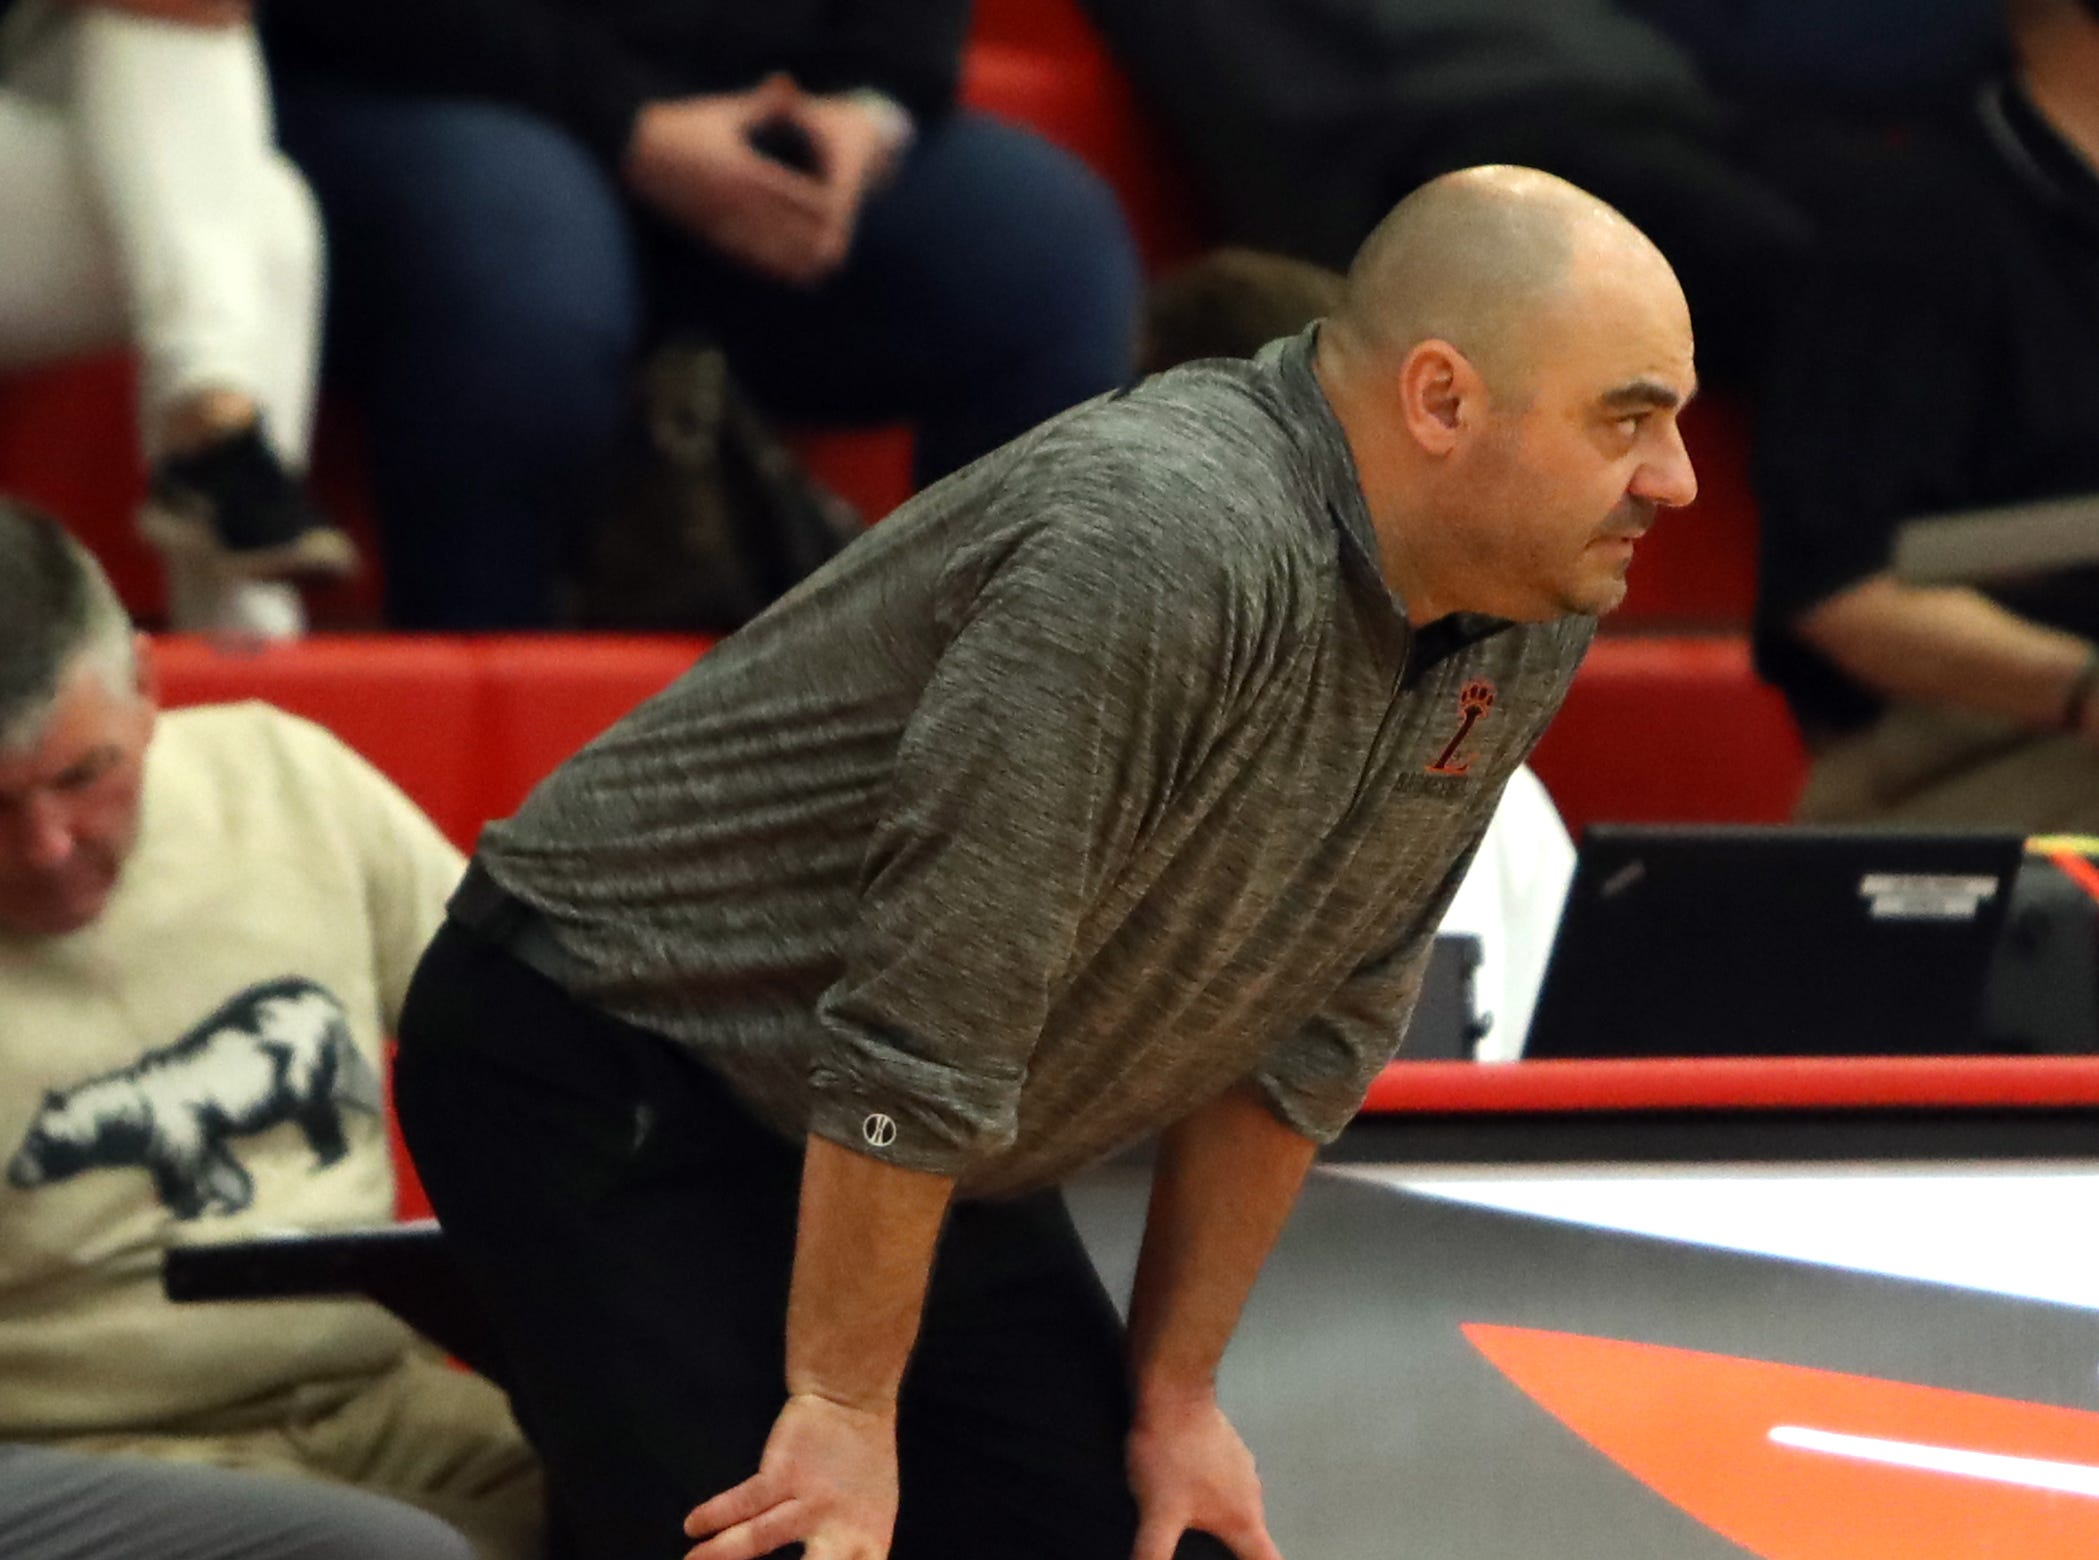 Loveland head coach Rob Reis watches his offense work in the sectional playoffs at Lakota West High School Feb. 23, 2019. Mount Healthy defeated Loveland 62-57.